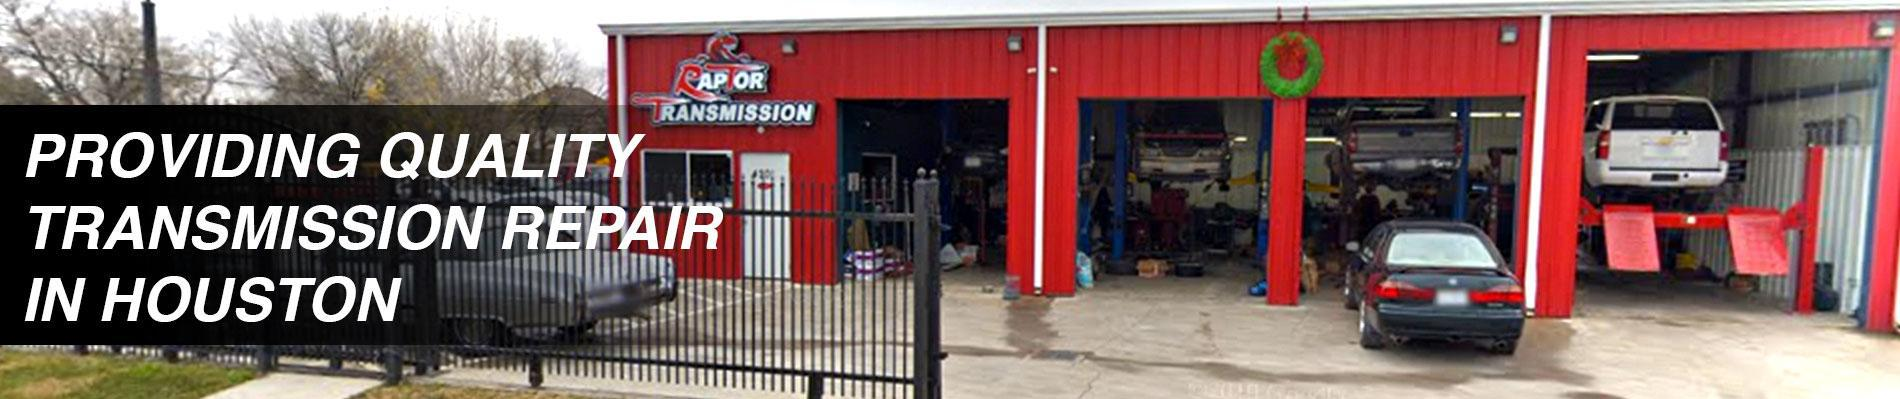 Providing Quality Transmission Repair in Houston